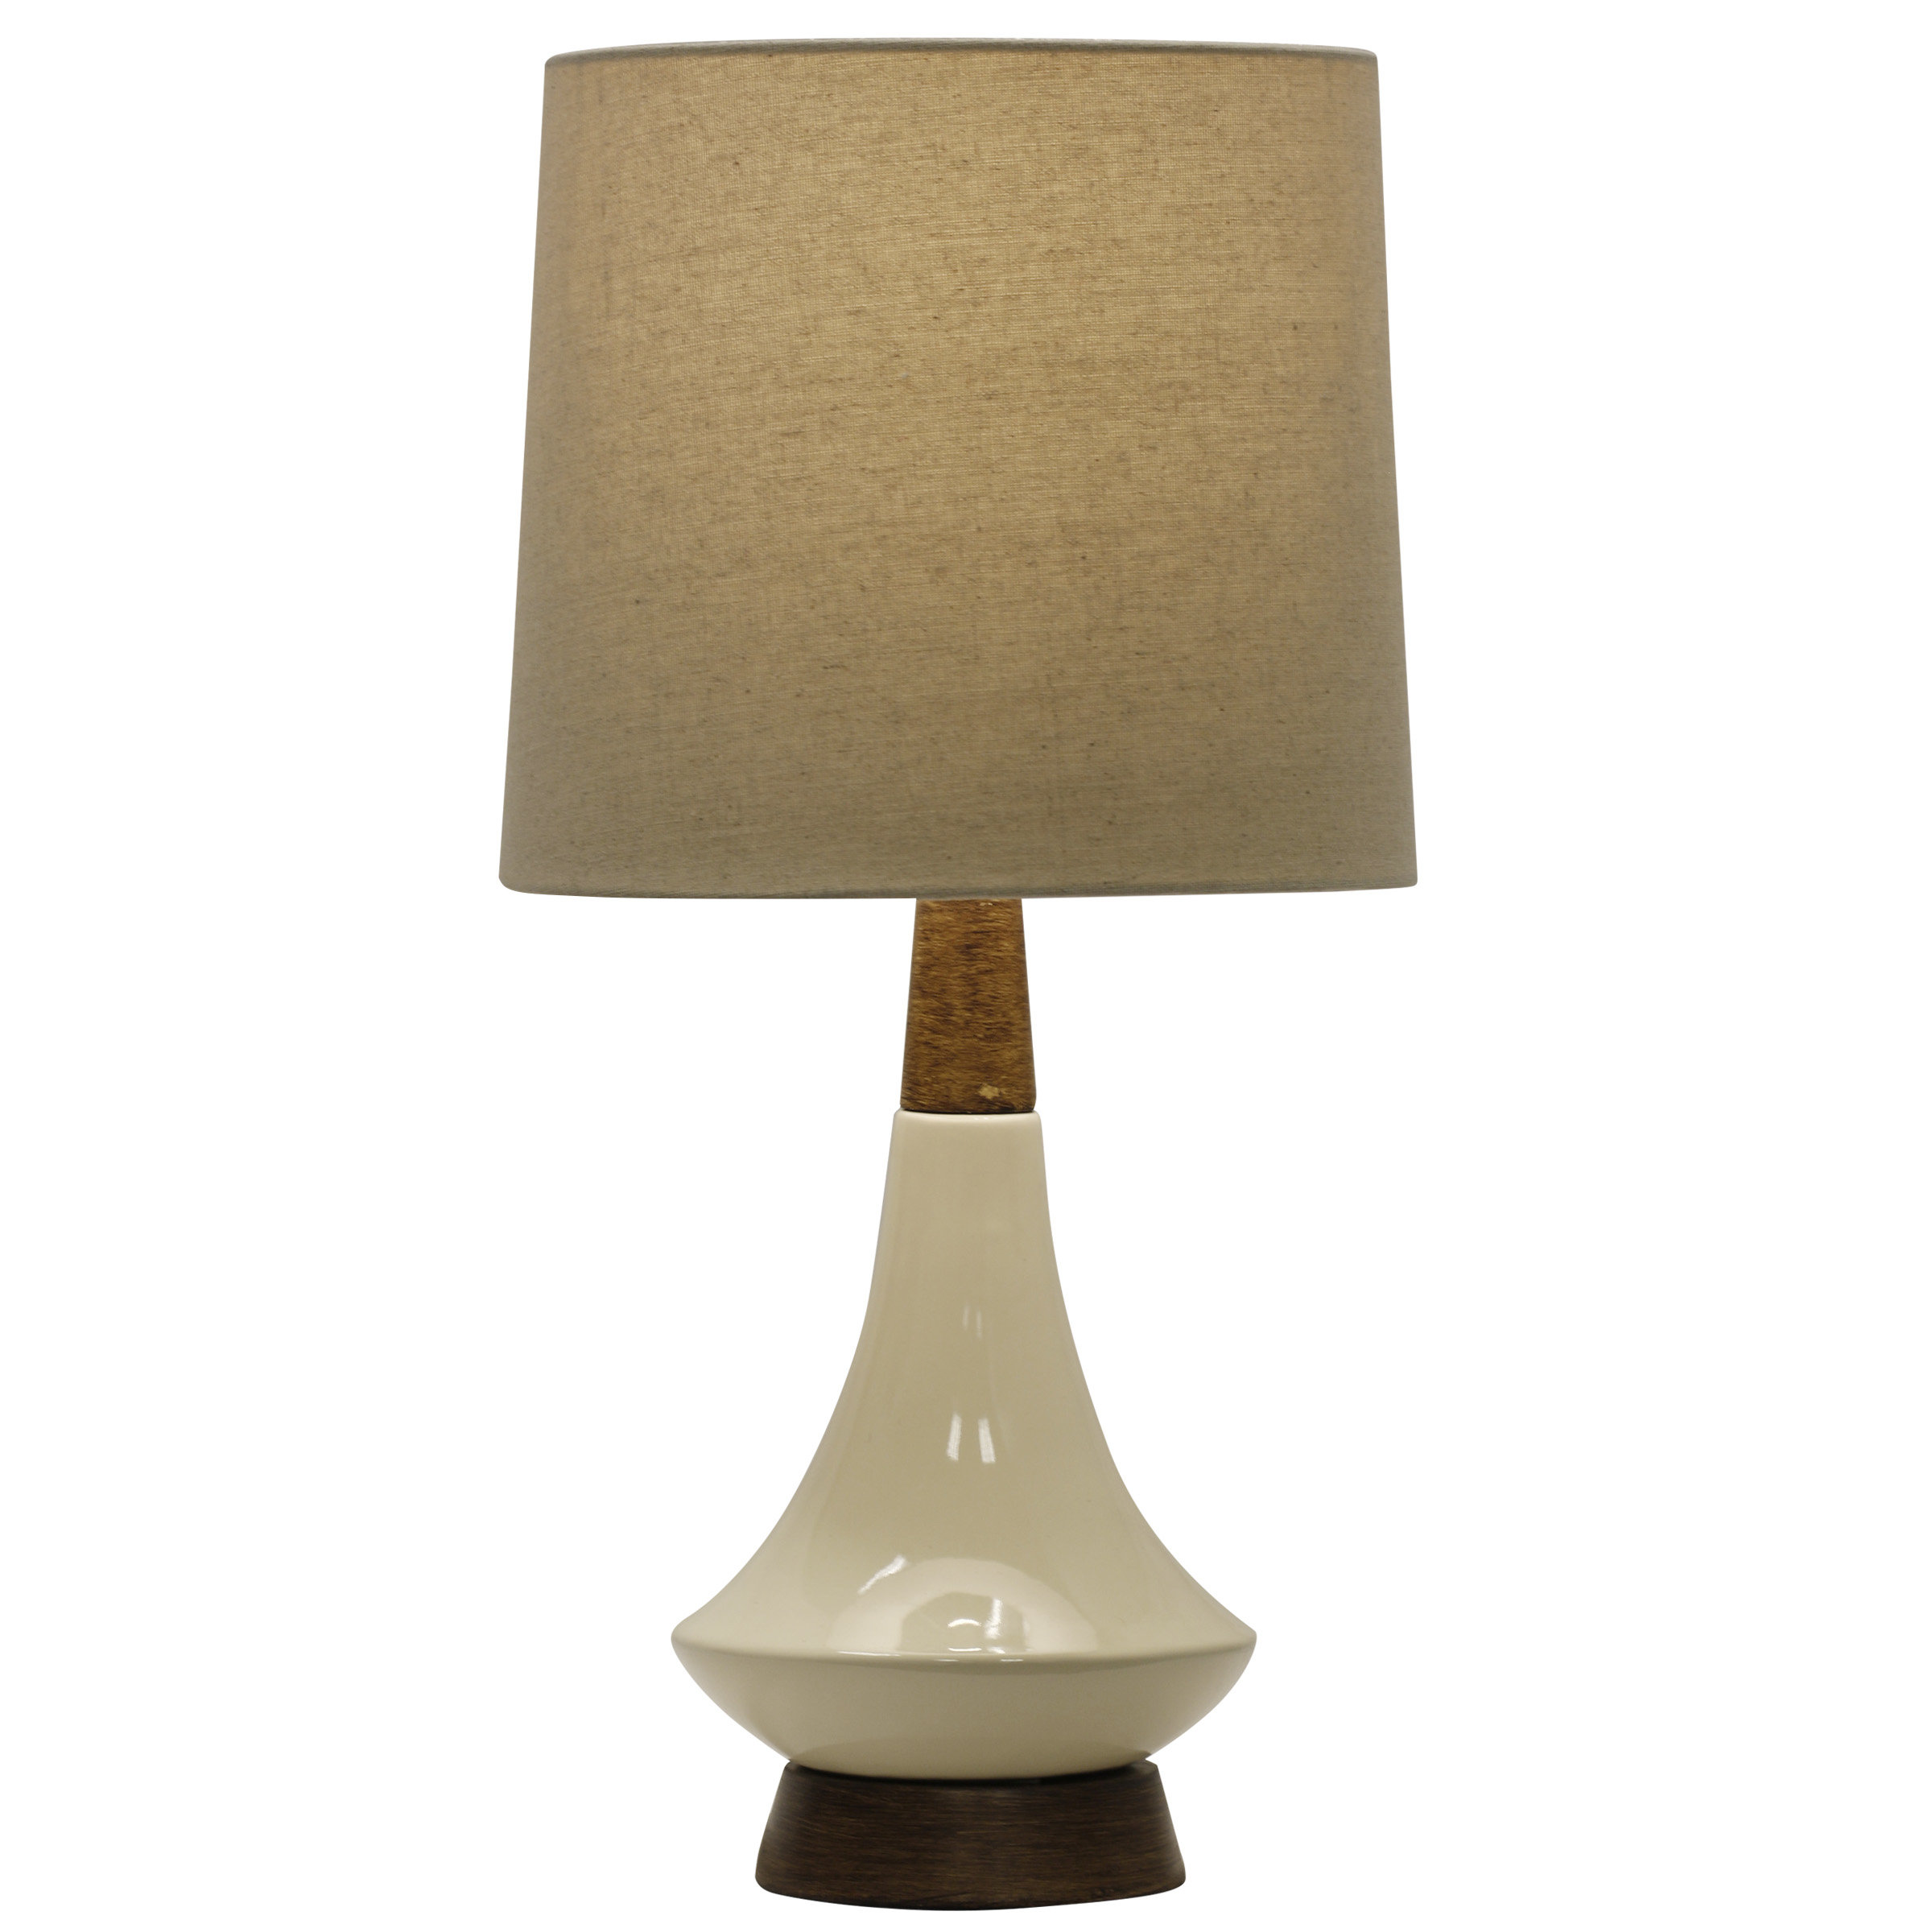 villela retro table lamp reviews joss main accent lighting seattle square metal side ethan allen furniture kmart camping kirklands lamps pier one runner mirrored with drawers